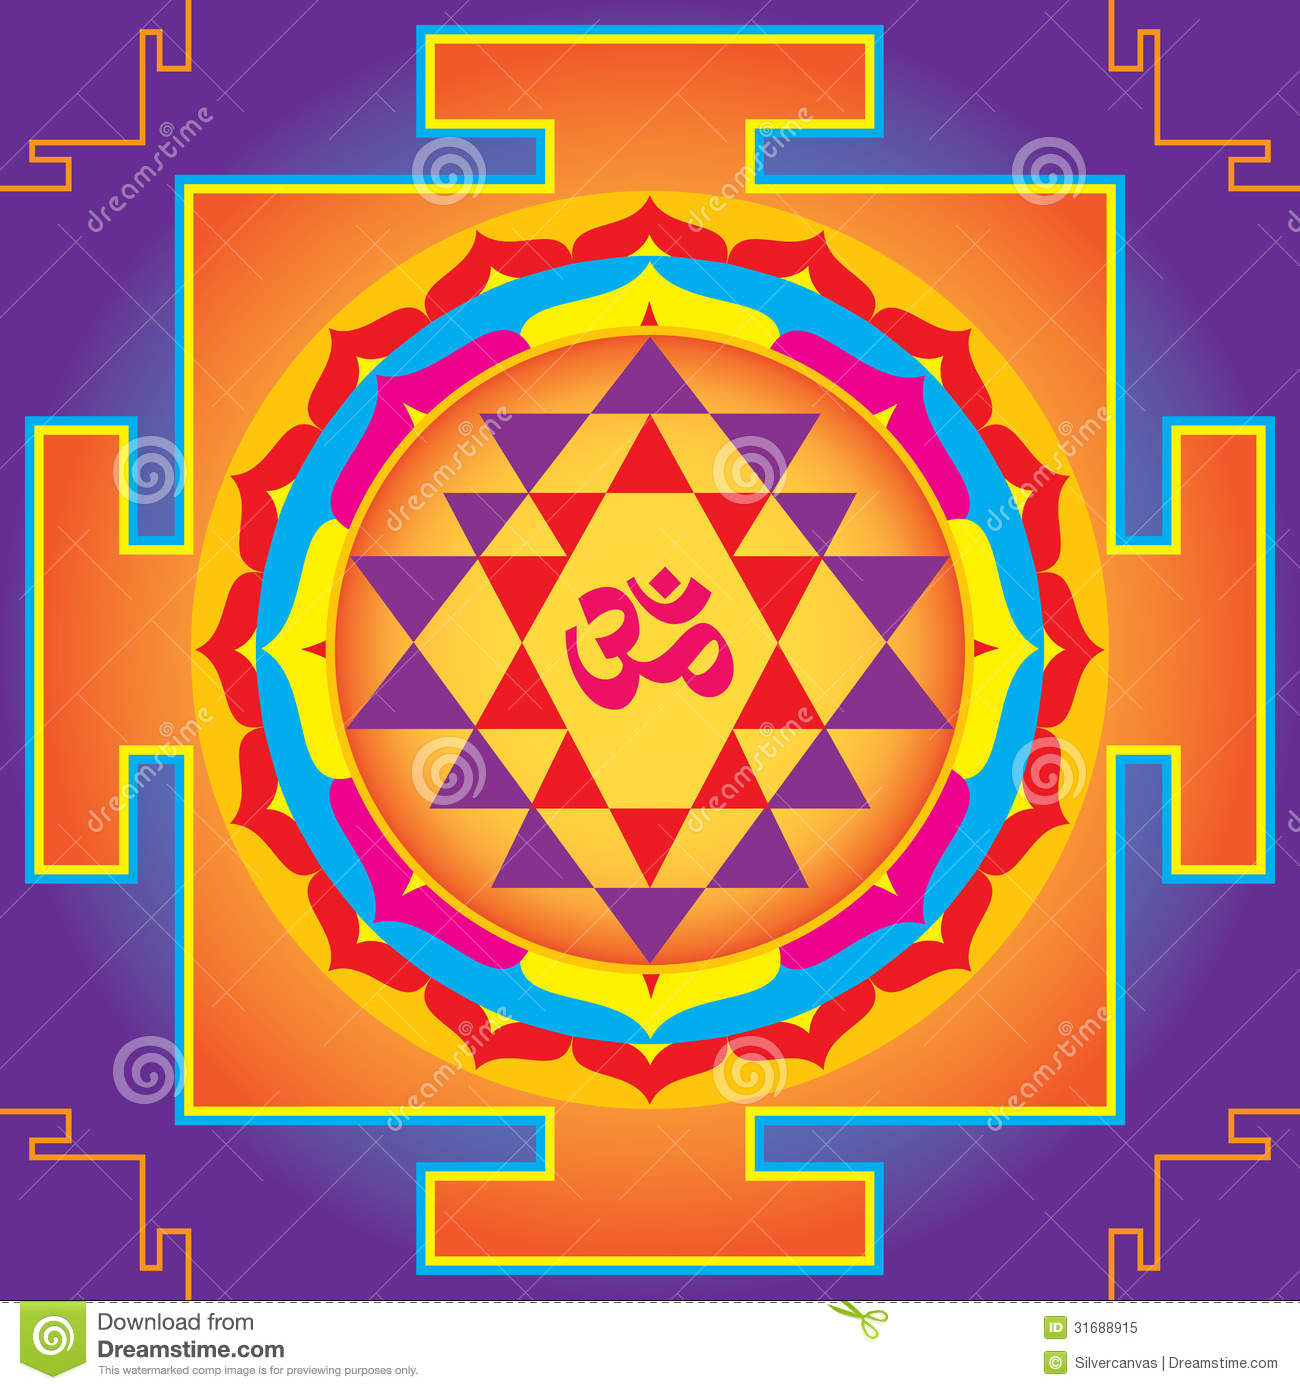 The Sri Yantra. Royalty Free Stock Photo - Image: 31688915 Sacred Geometry 3d Shapes